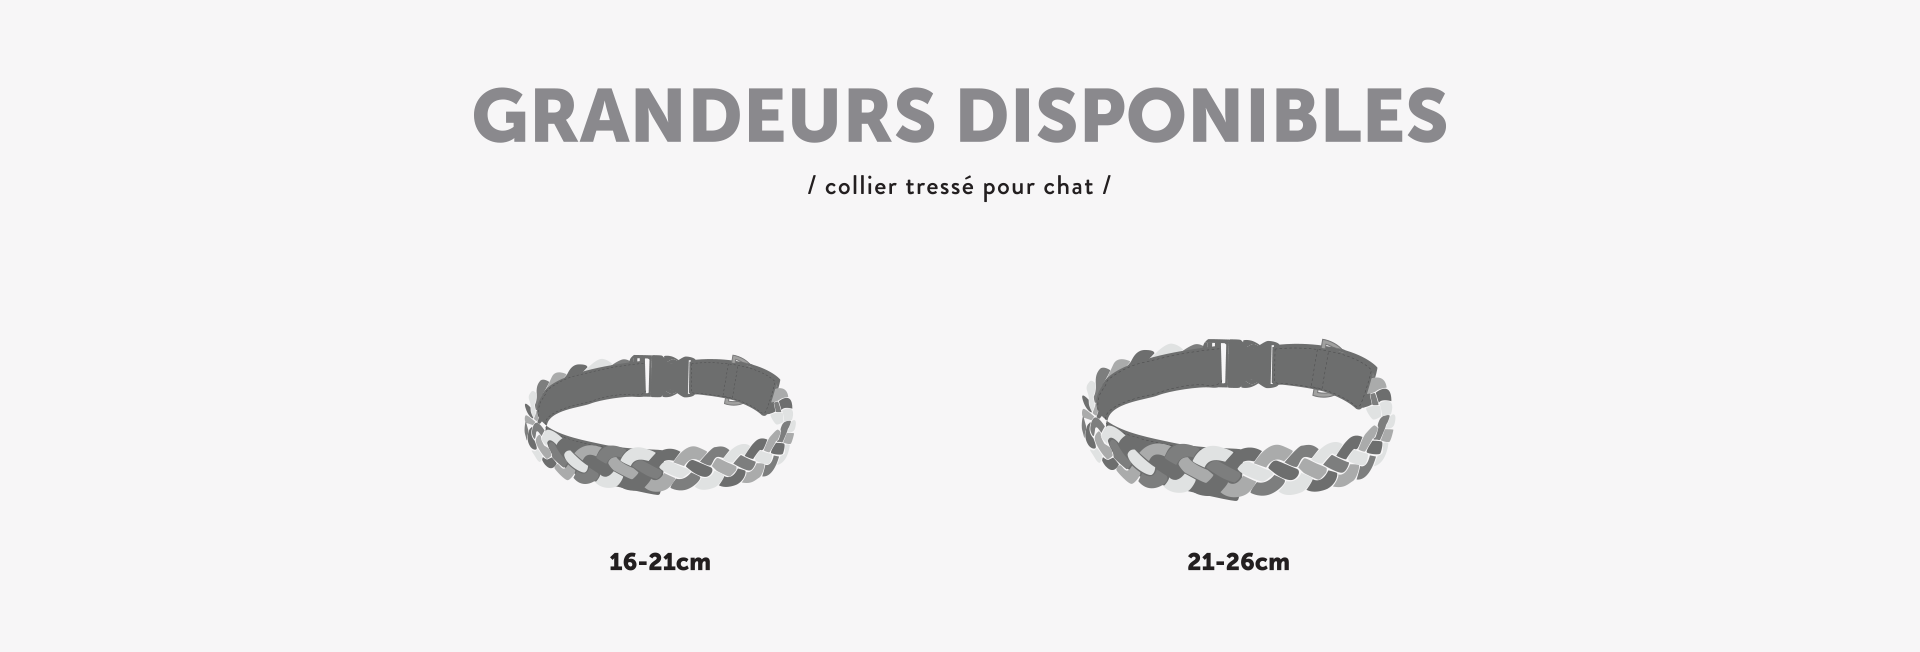 dimensions-braided-collar-for-cats-french